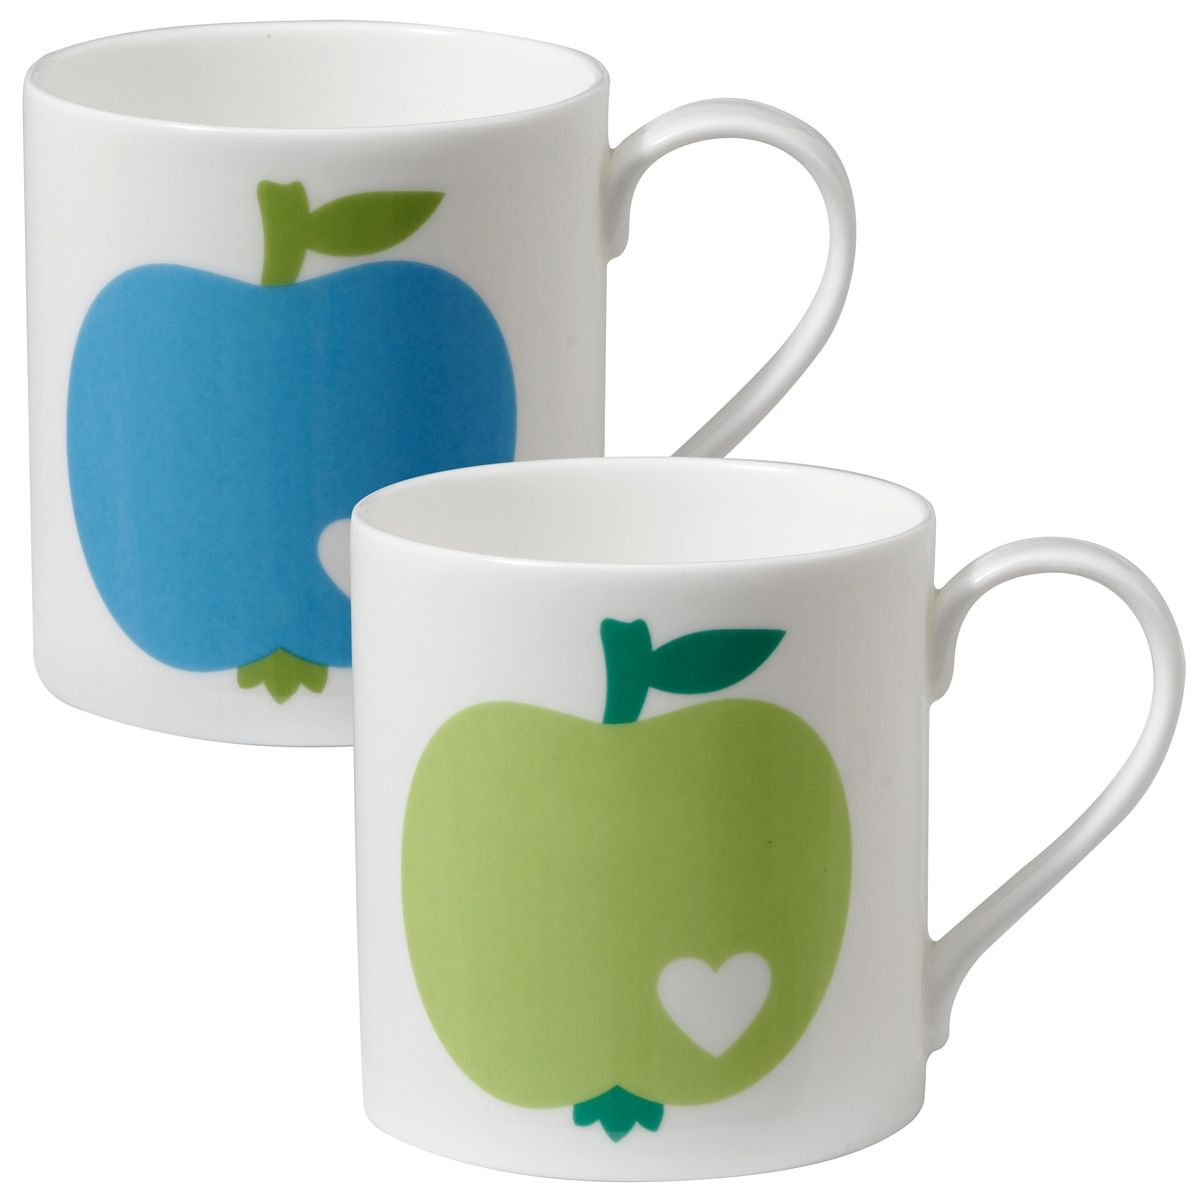 Apfel Becher Set / Apple mug set: Made of fine bone china from the UK, the apple mugs are perfect for your coffee and tea!